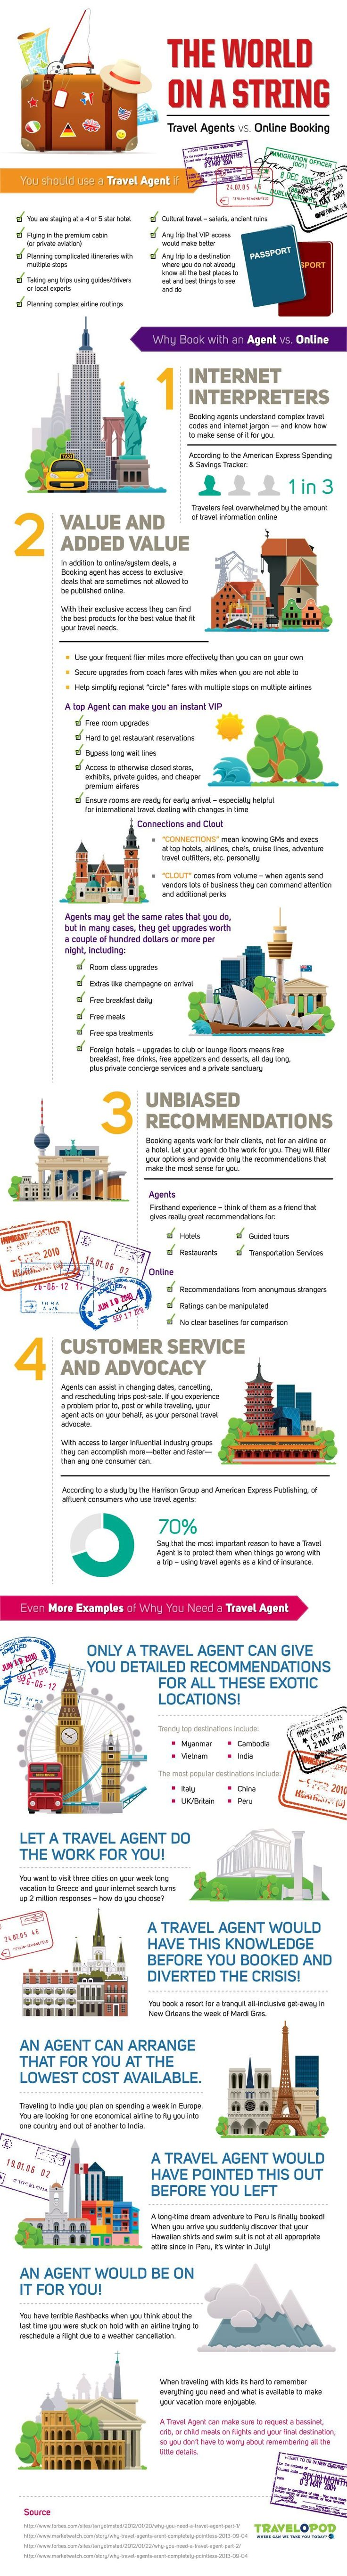 The World On A String Travel Agents vs Online Booking   #Infographic #TravelAgents #OnlineBooking